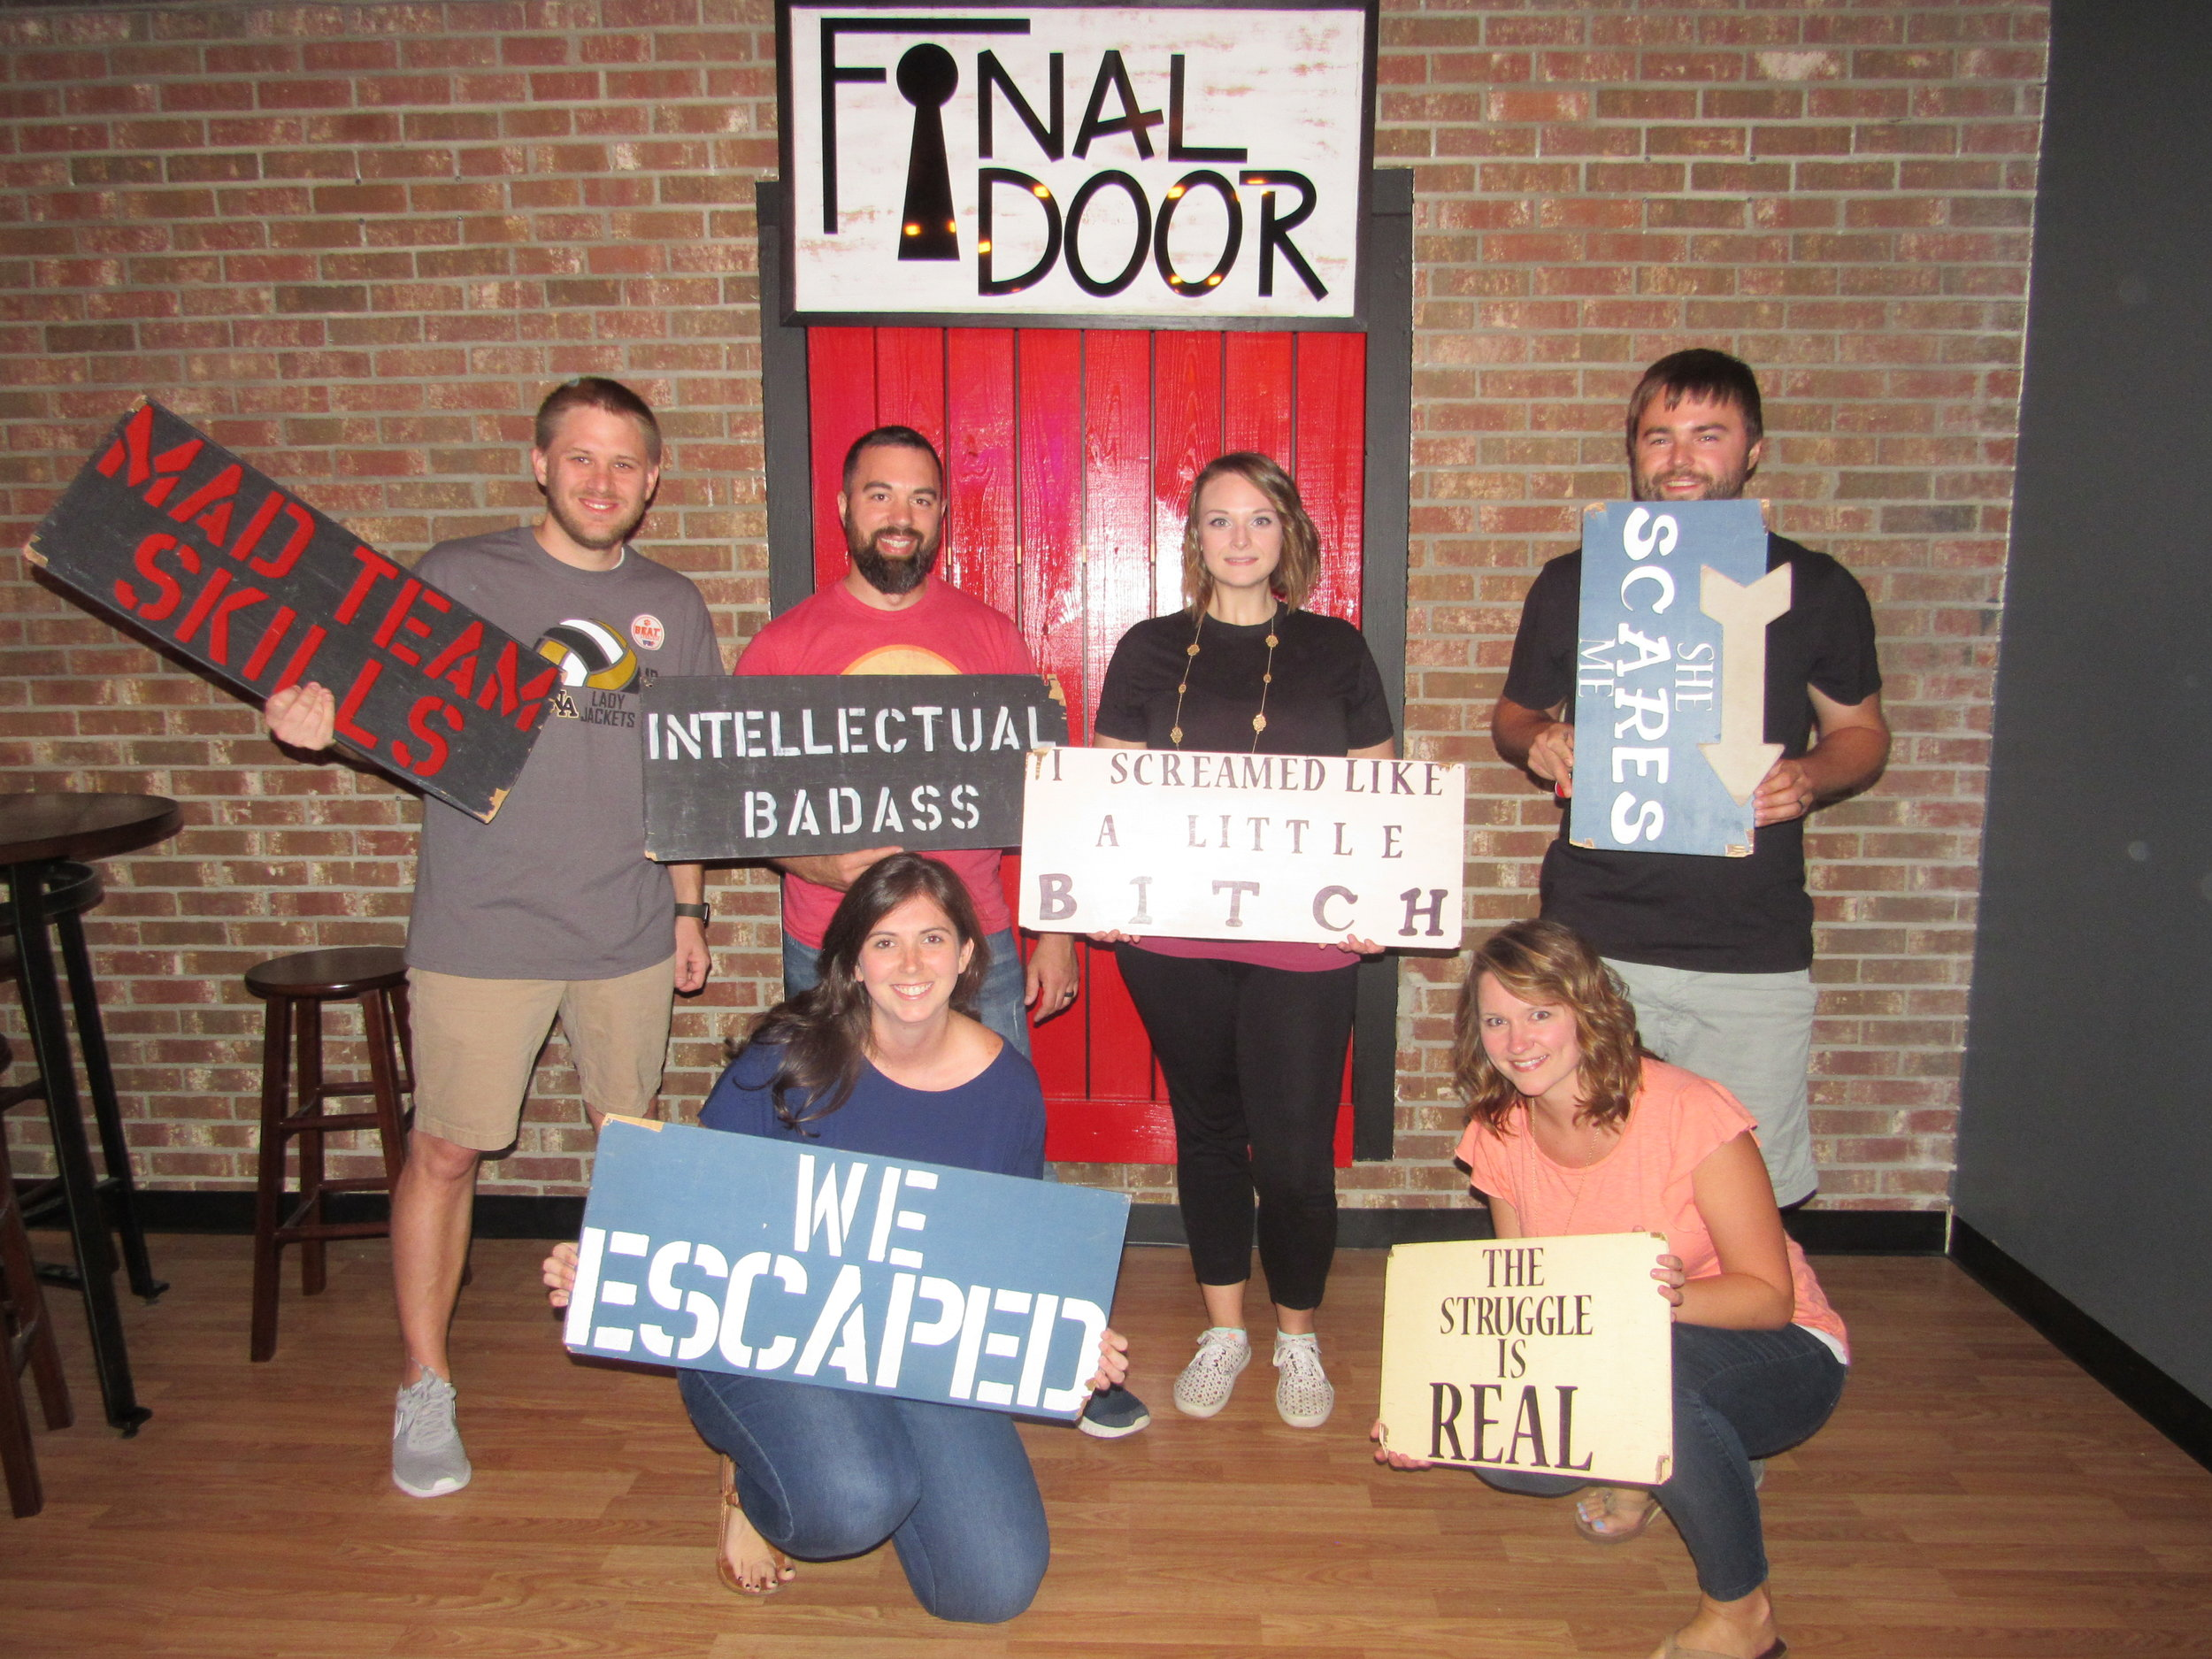 the-final-door-escape-room-columbia-sc-team-photos-sept-29-2018-05.JPG